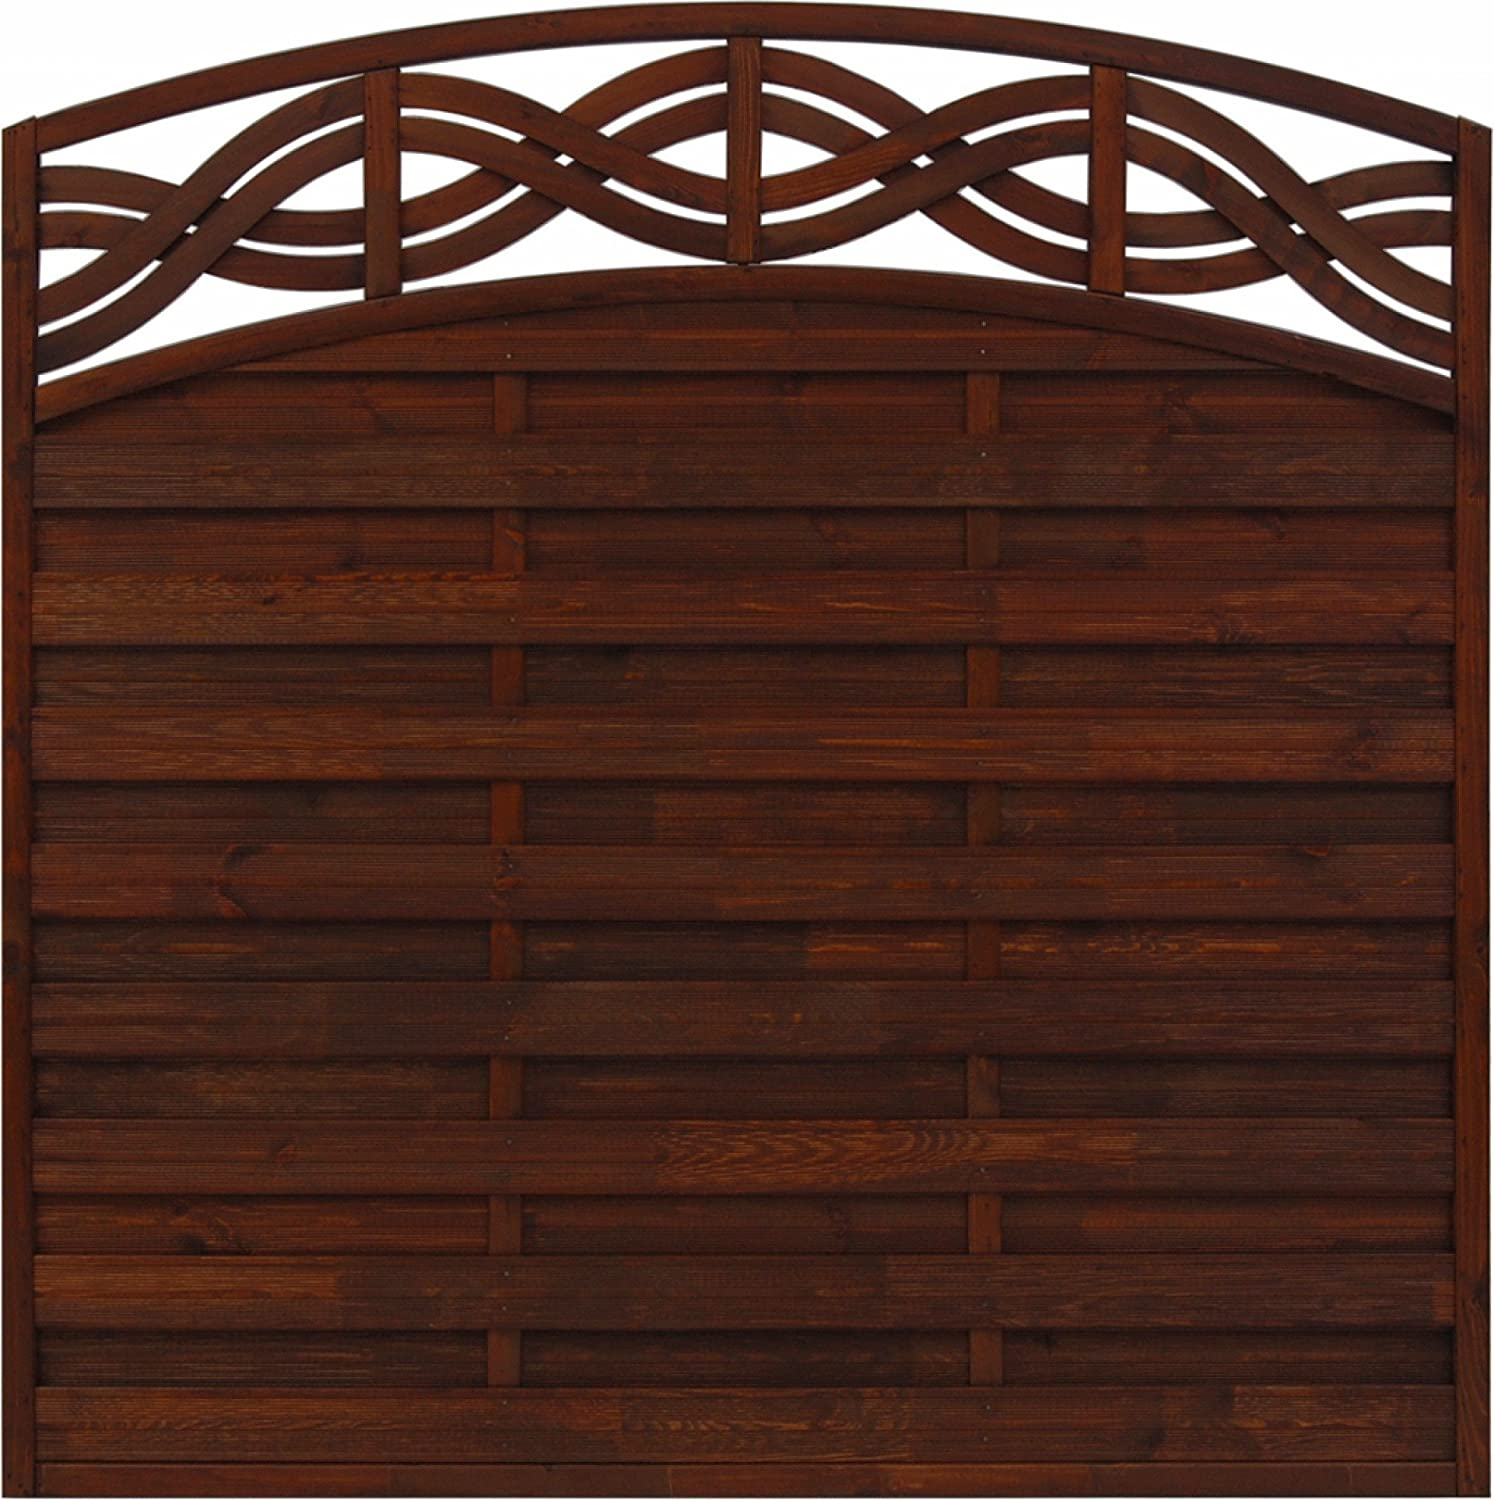 Andrewex wooden fence 164 180 x 180, varnished, brown, Chateau